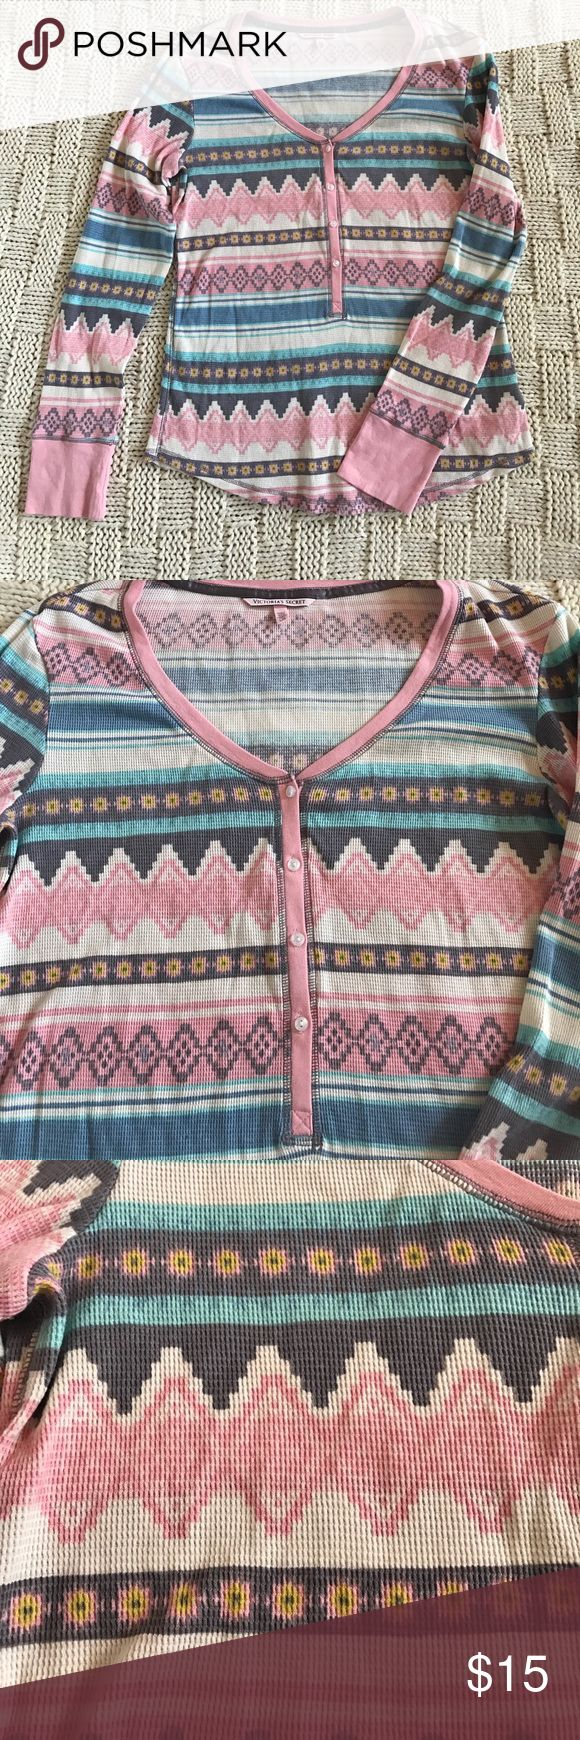 Victoria' Secret Thermal Top Adorable and soft tribal print Victoria's Secret Thermal Pajama top, size large. Pretty pastel colors (pink, yellow, blues, purple and cream) throughout shirt. 4 clear buttons halfway down Shirt. 98% cotton. Can be worn as a pajama top or as a regular top. I wore it as a regular top and got a lot of compliments but it's a little too big on me. Only worn once, like new condition! Victoria's Secret Tops Button Down Shirts